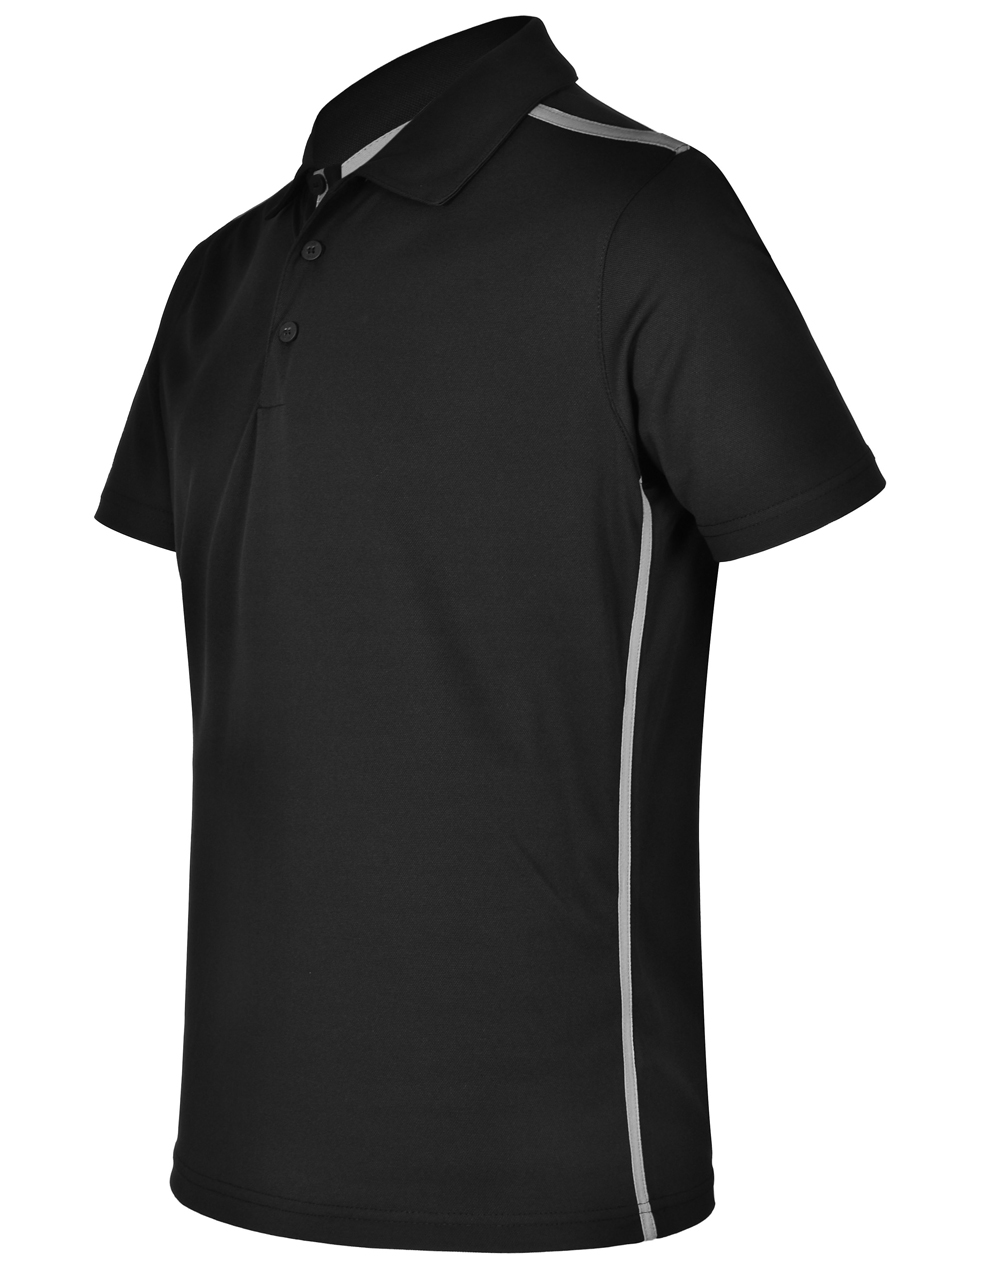 https://s3-ap-southeast-1.amazonaws.com/ws-imgs/POLOSHIRTS/PS83_BlackAsh_Side.jpg